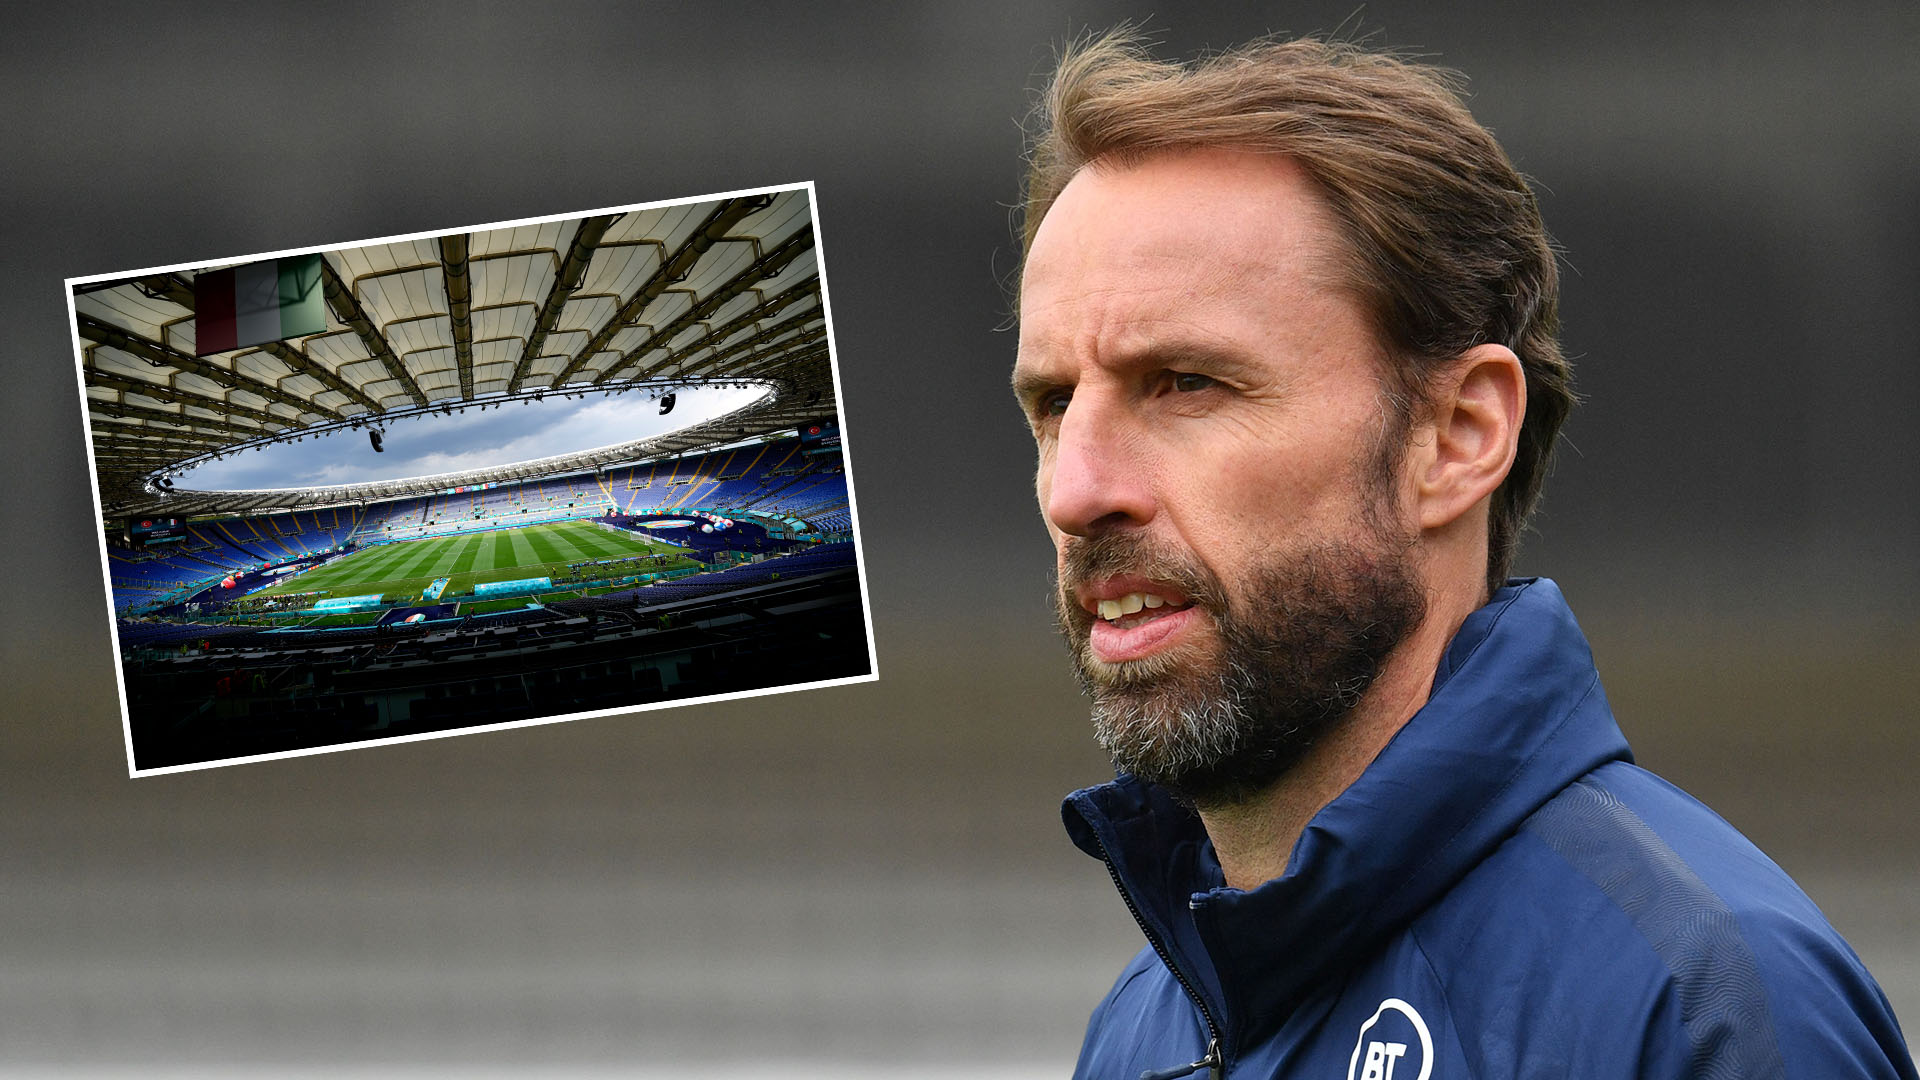 Southgate explains why England playing away from Wembley for first time at Euro 2020 is a positive